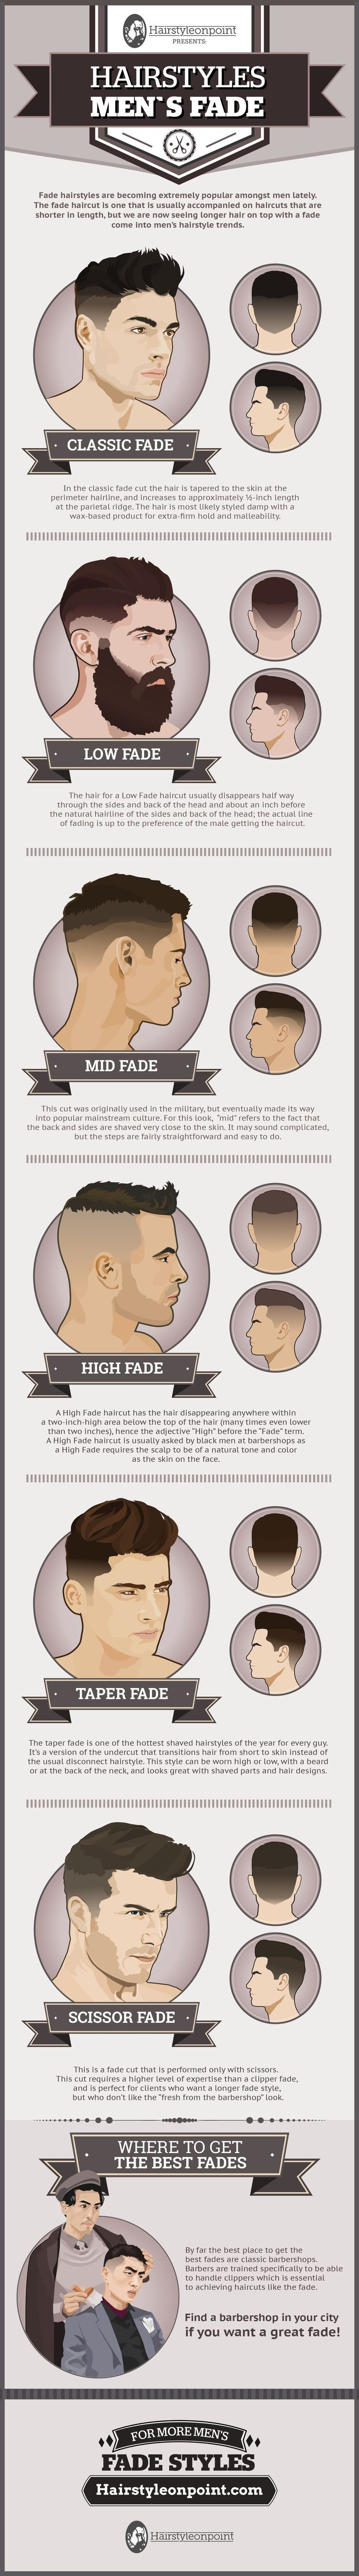 Mens haircut st louis  best men images on pinterest  man style men fashion and male